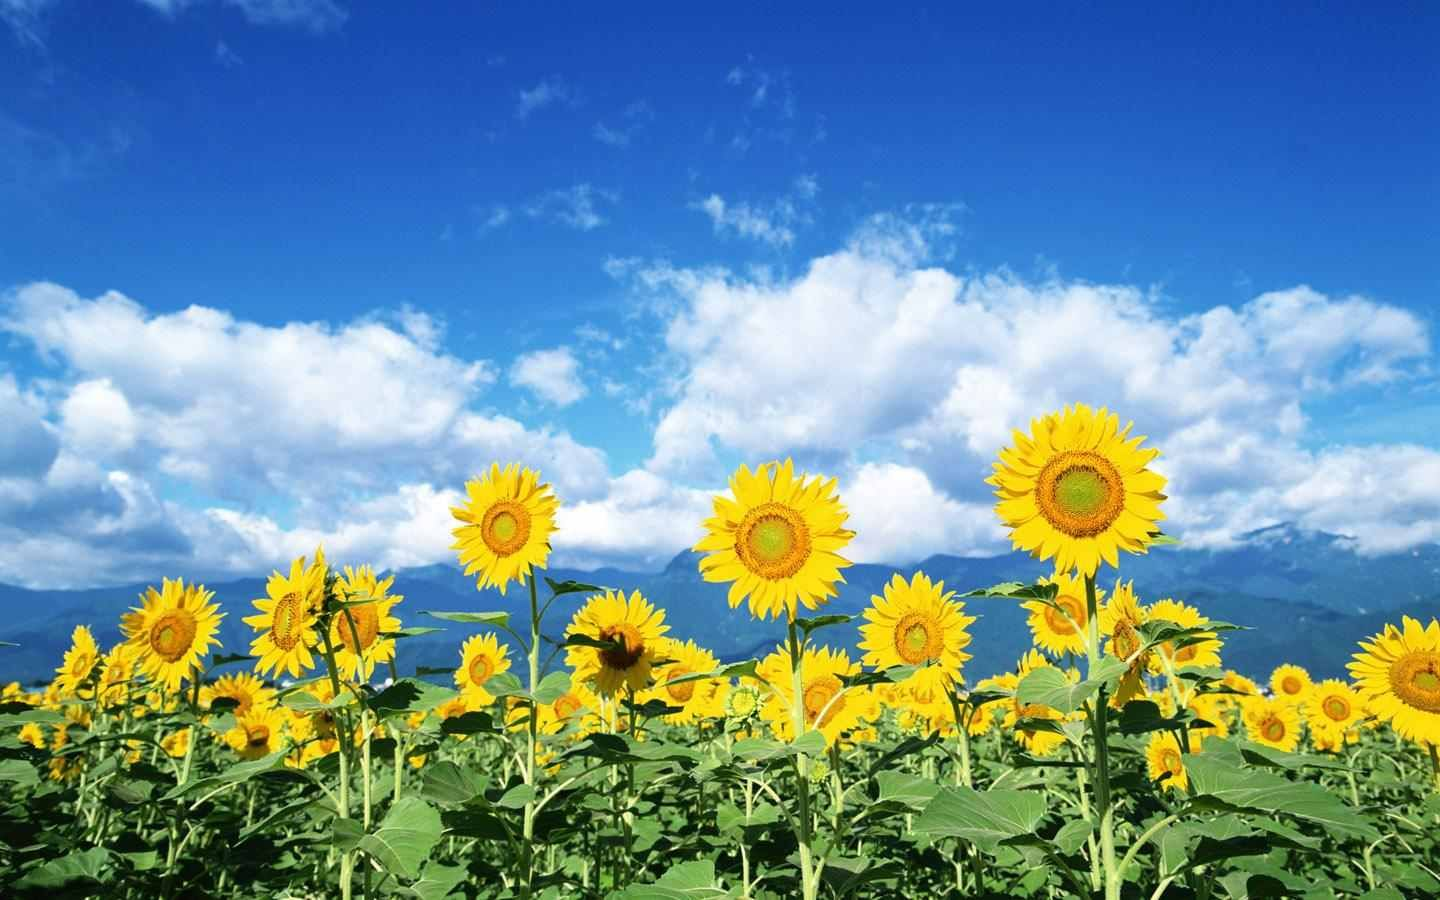 Sunflower Computer Wallpaper Bing images Sunny Sunflowers